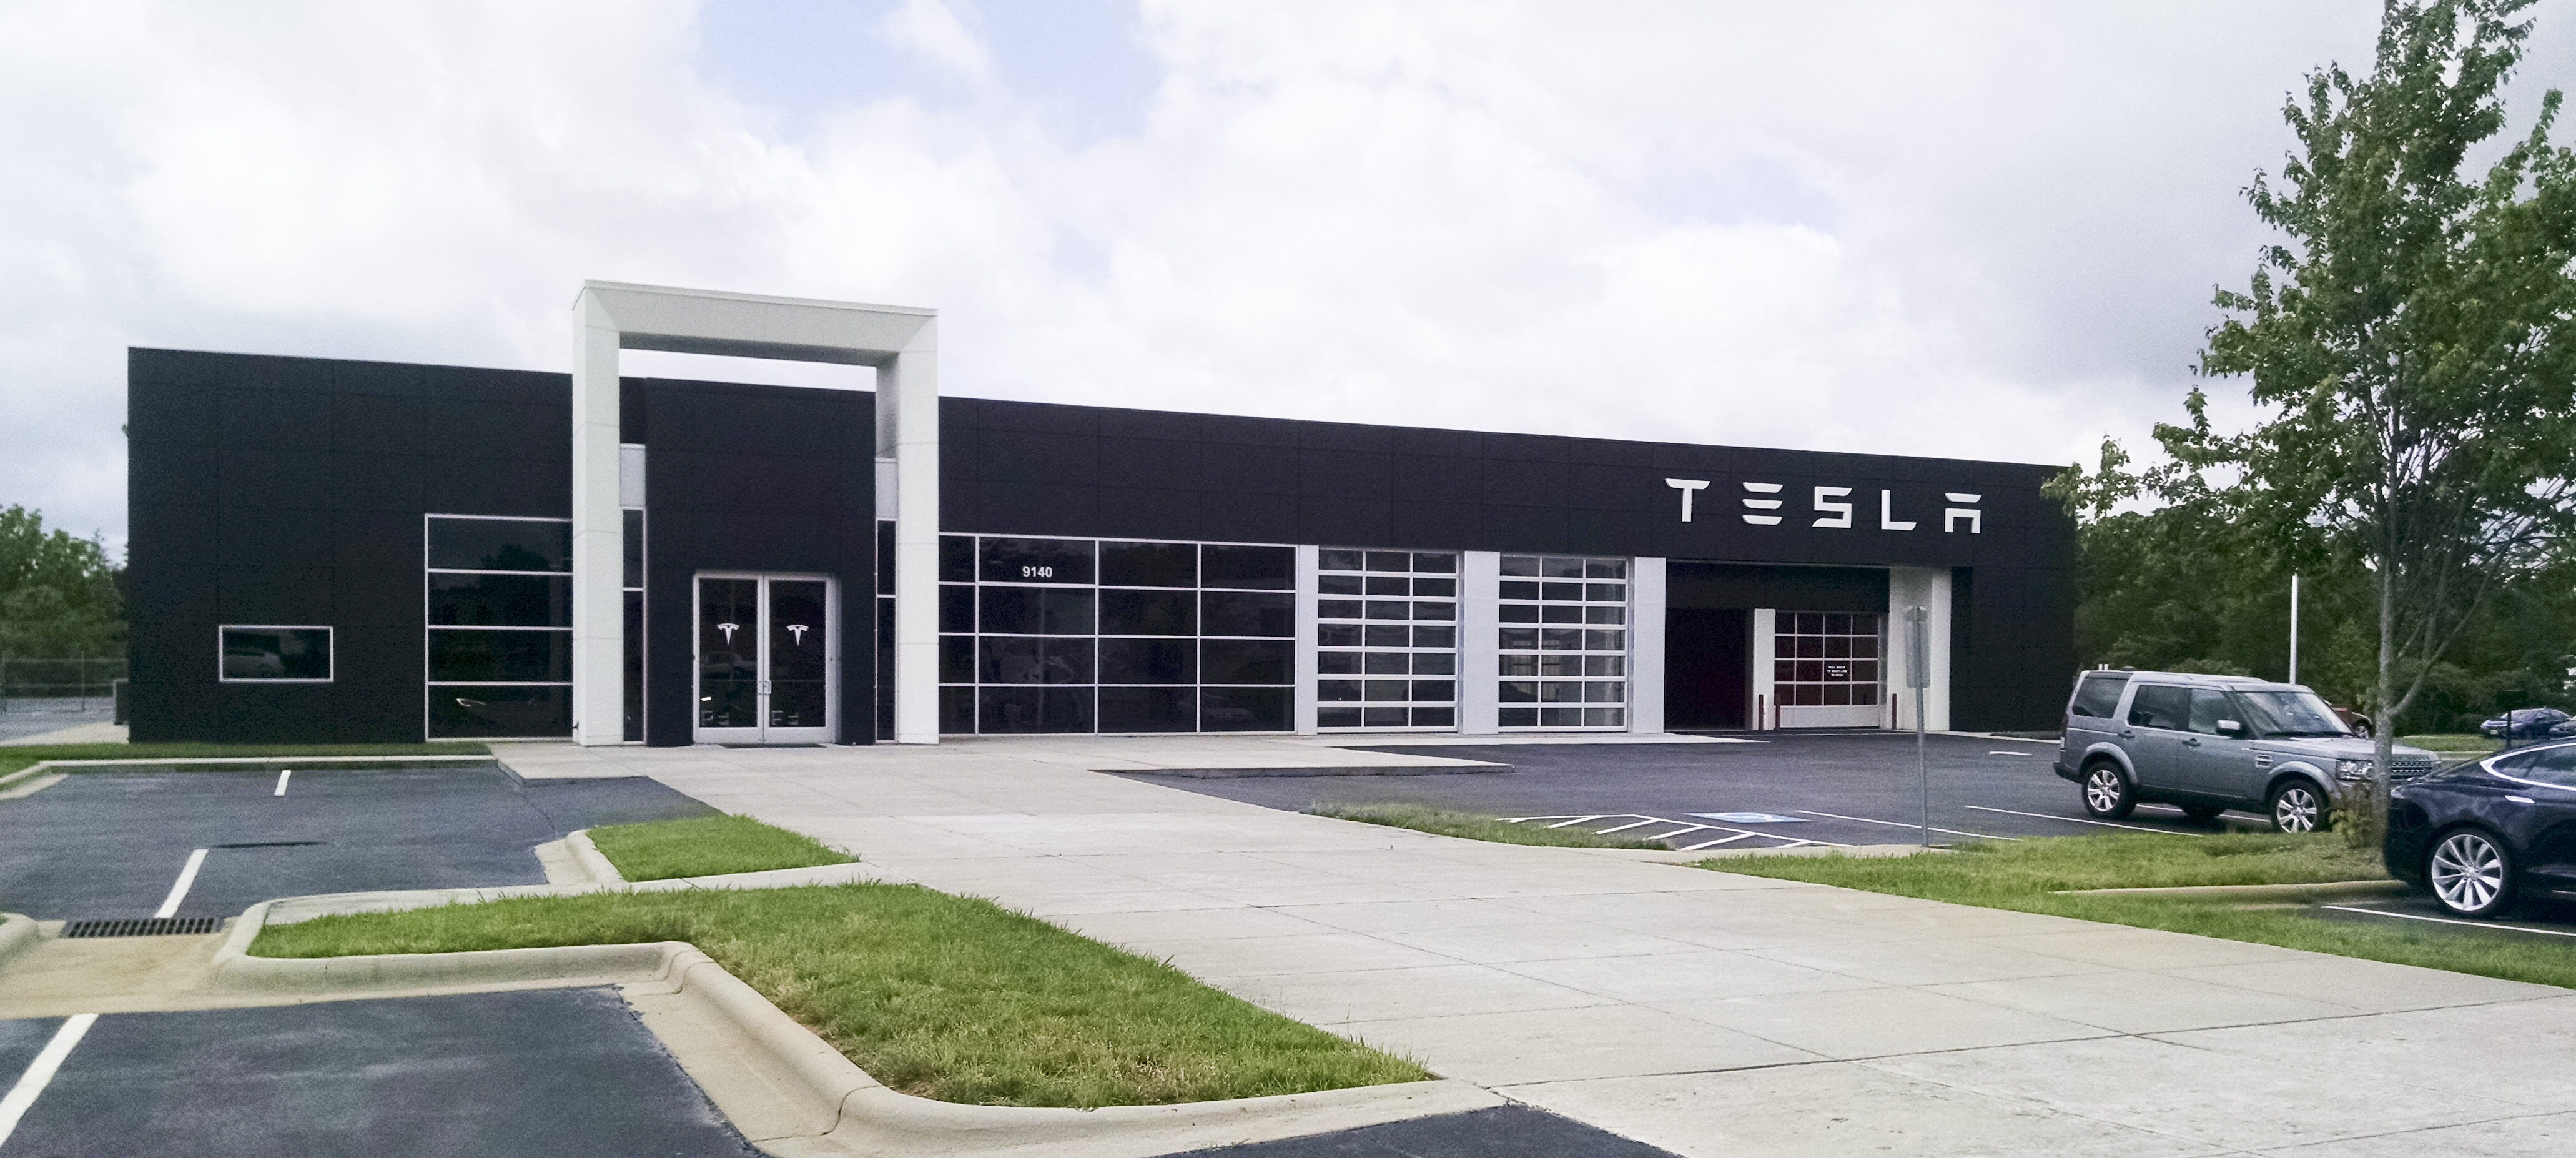 NC Says Tesla Cant Sell Cars At Charlotte Store